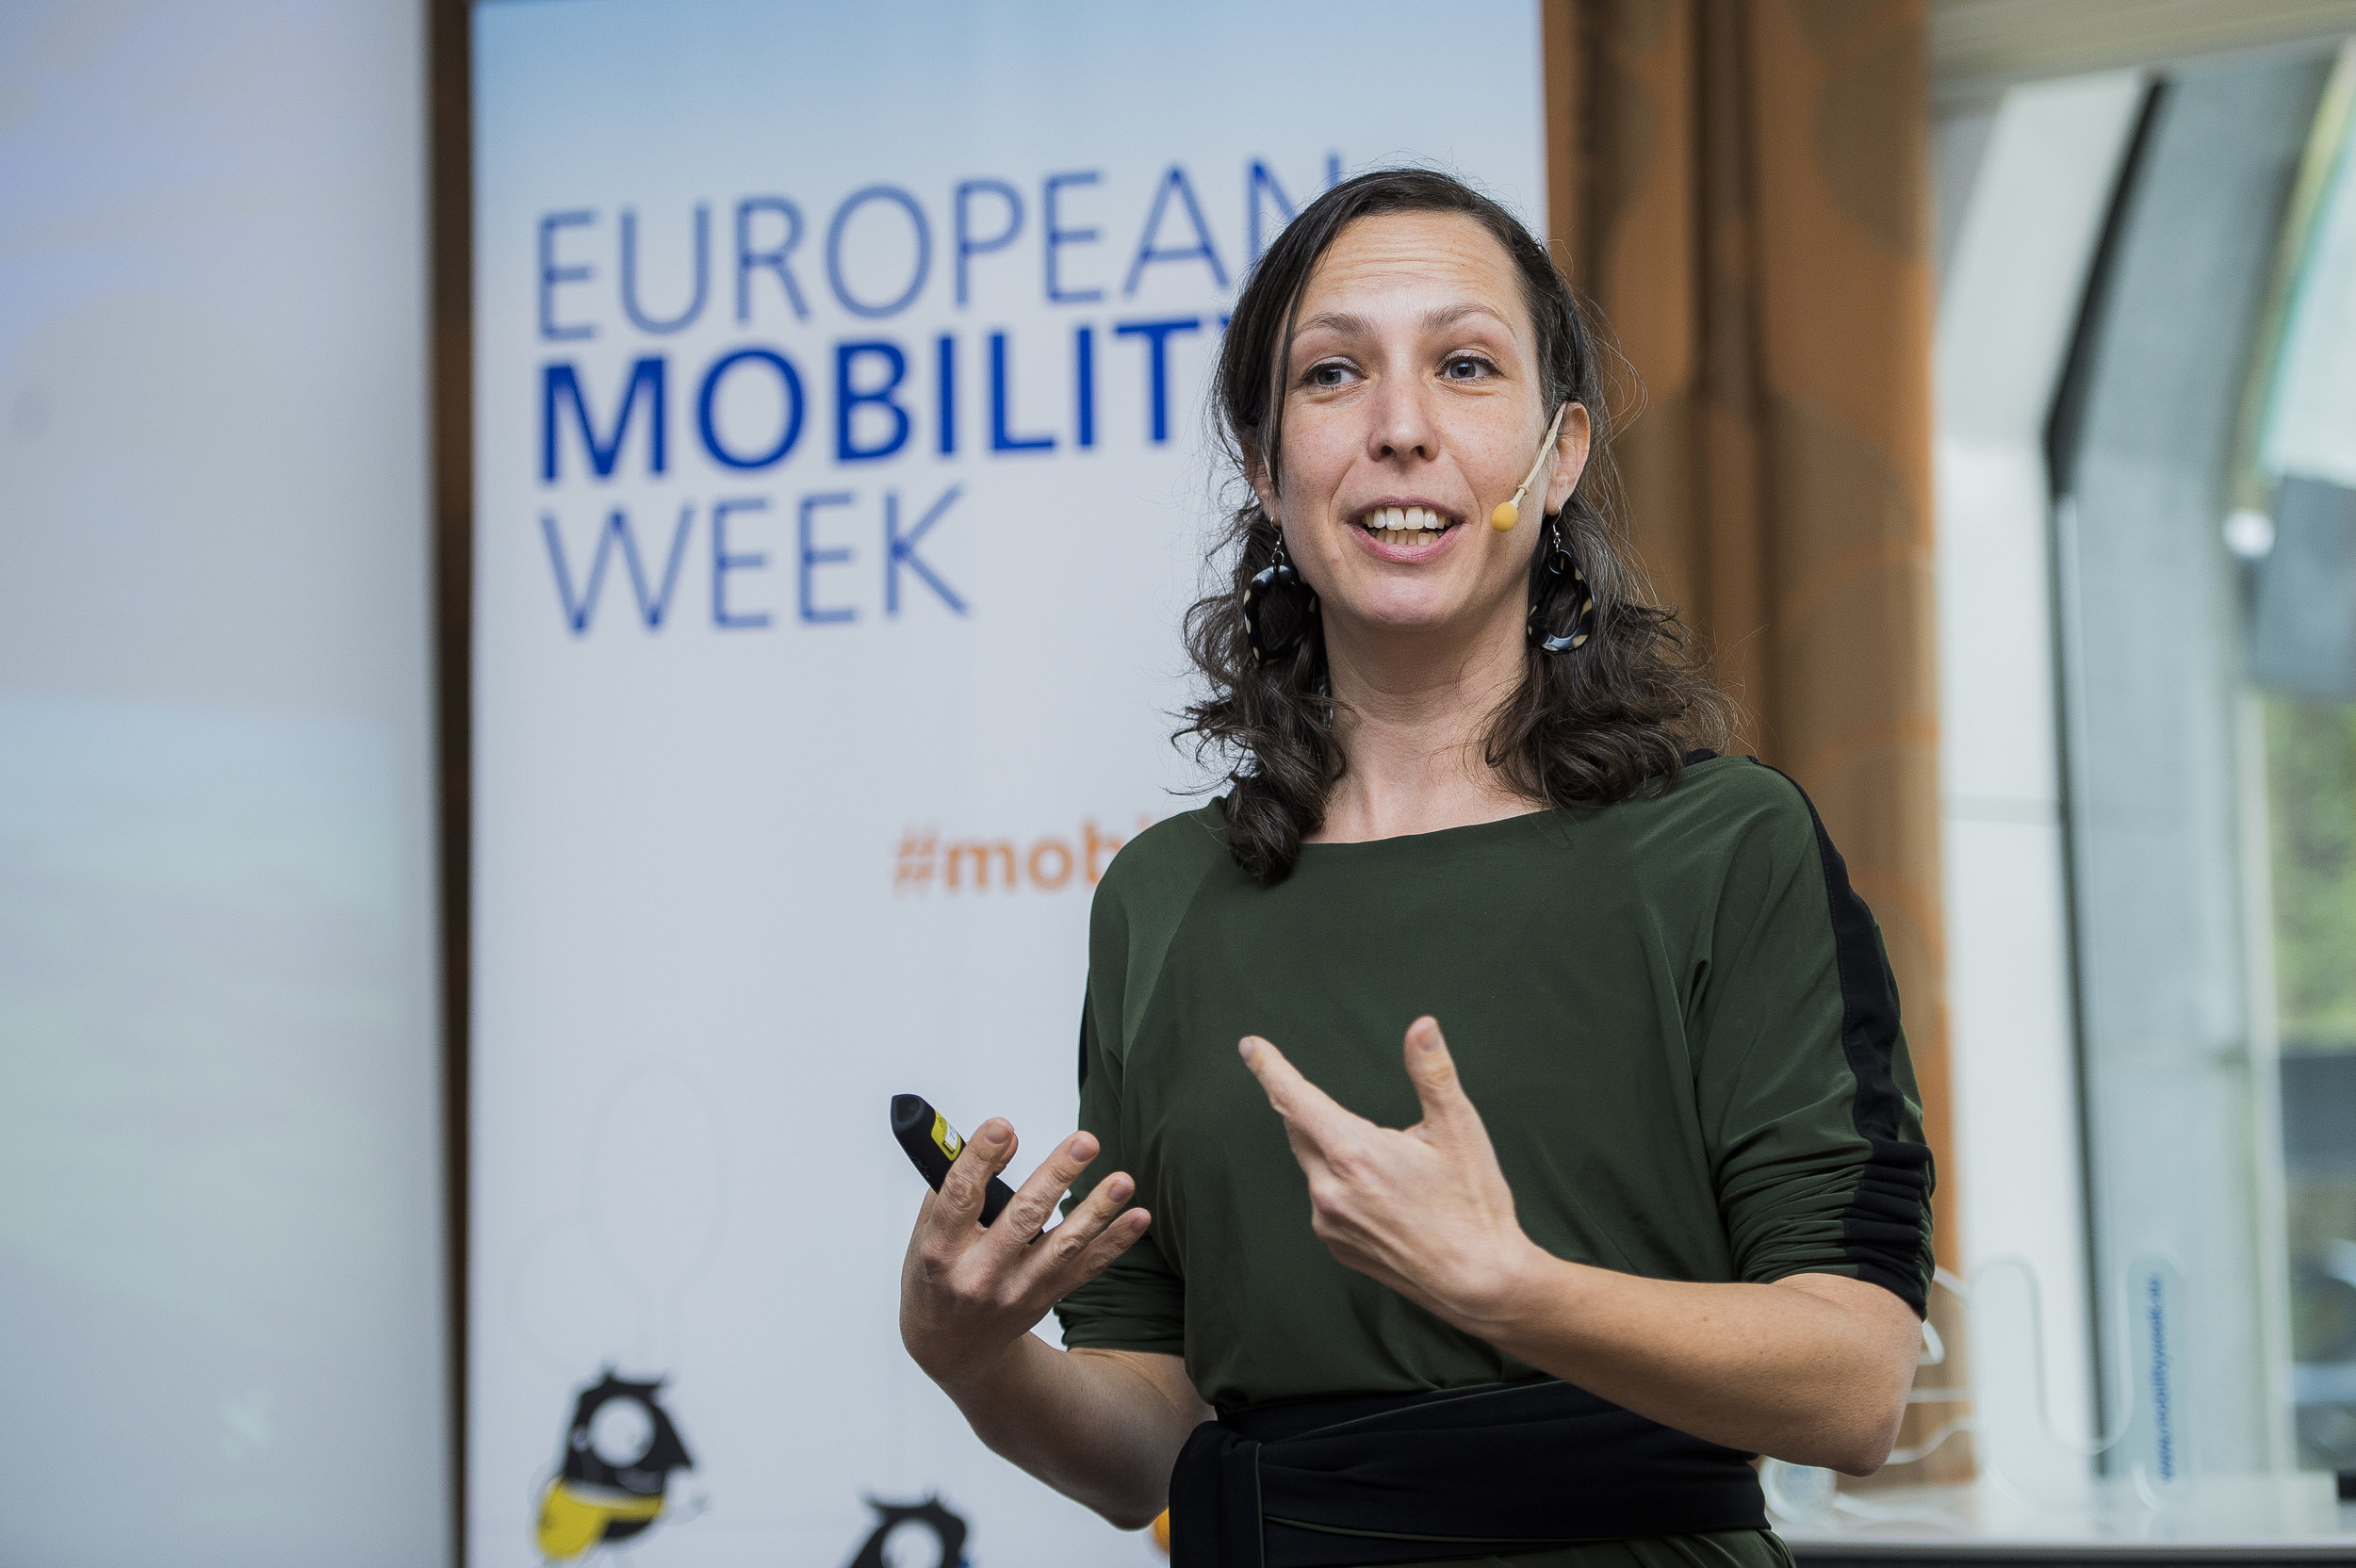 European Mobility week | Brussels